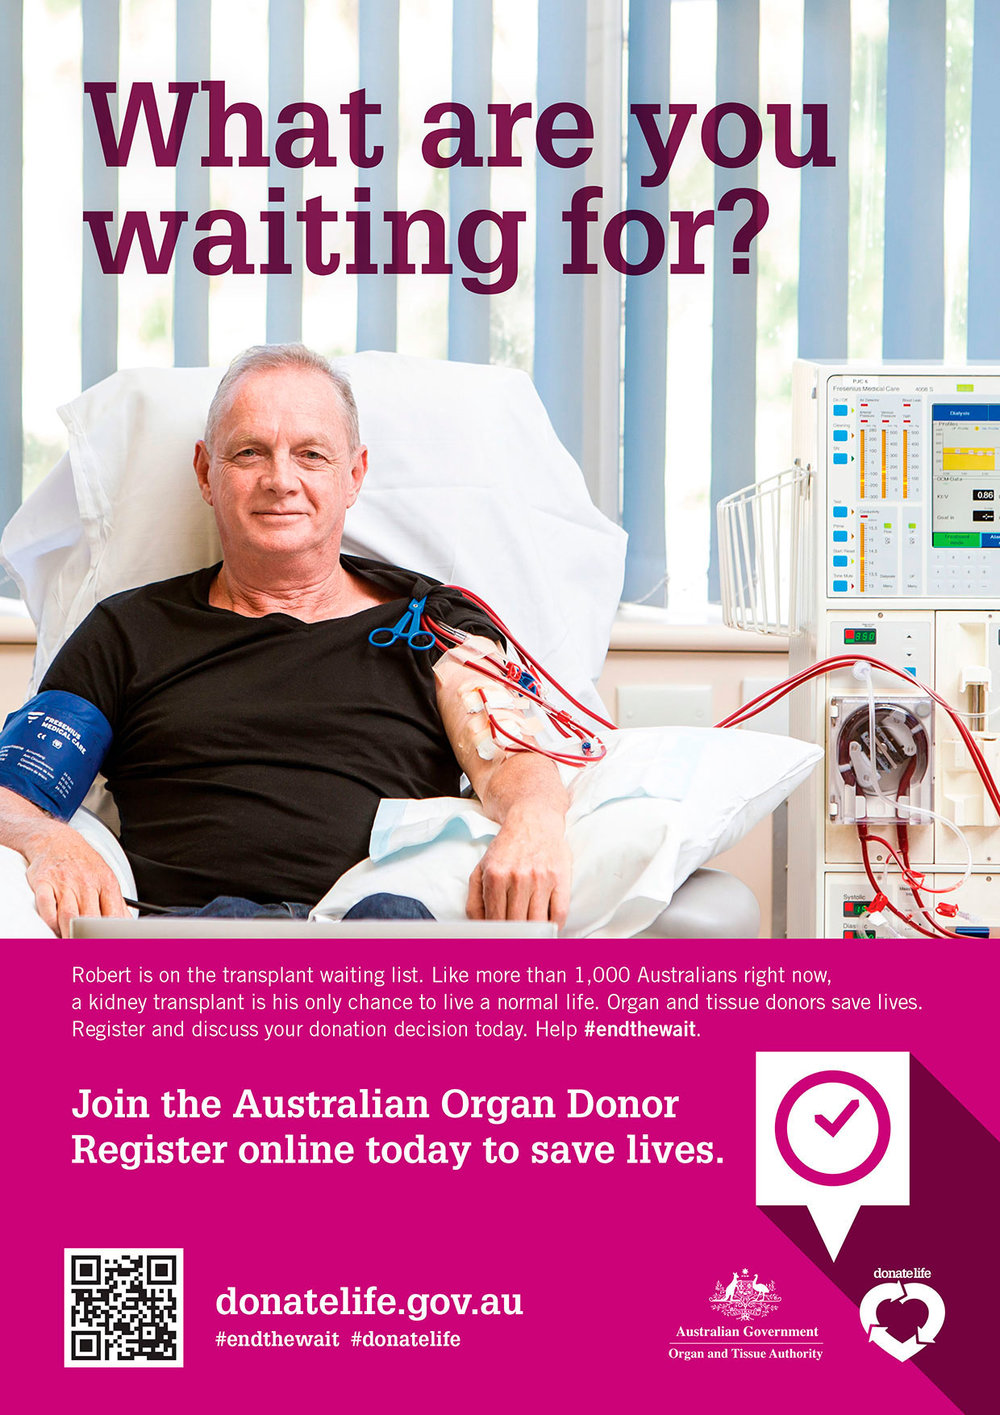 ORGAN & TISSUE AUTHORITY – AUSTRALIAN GOVERNMENT